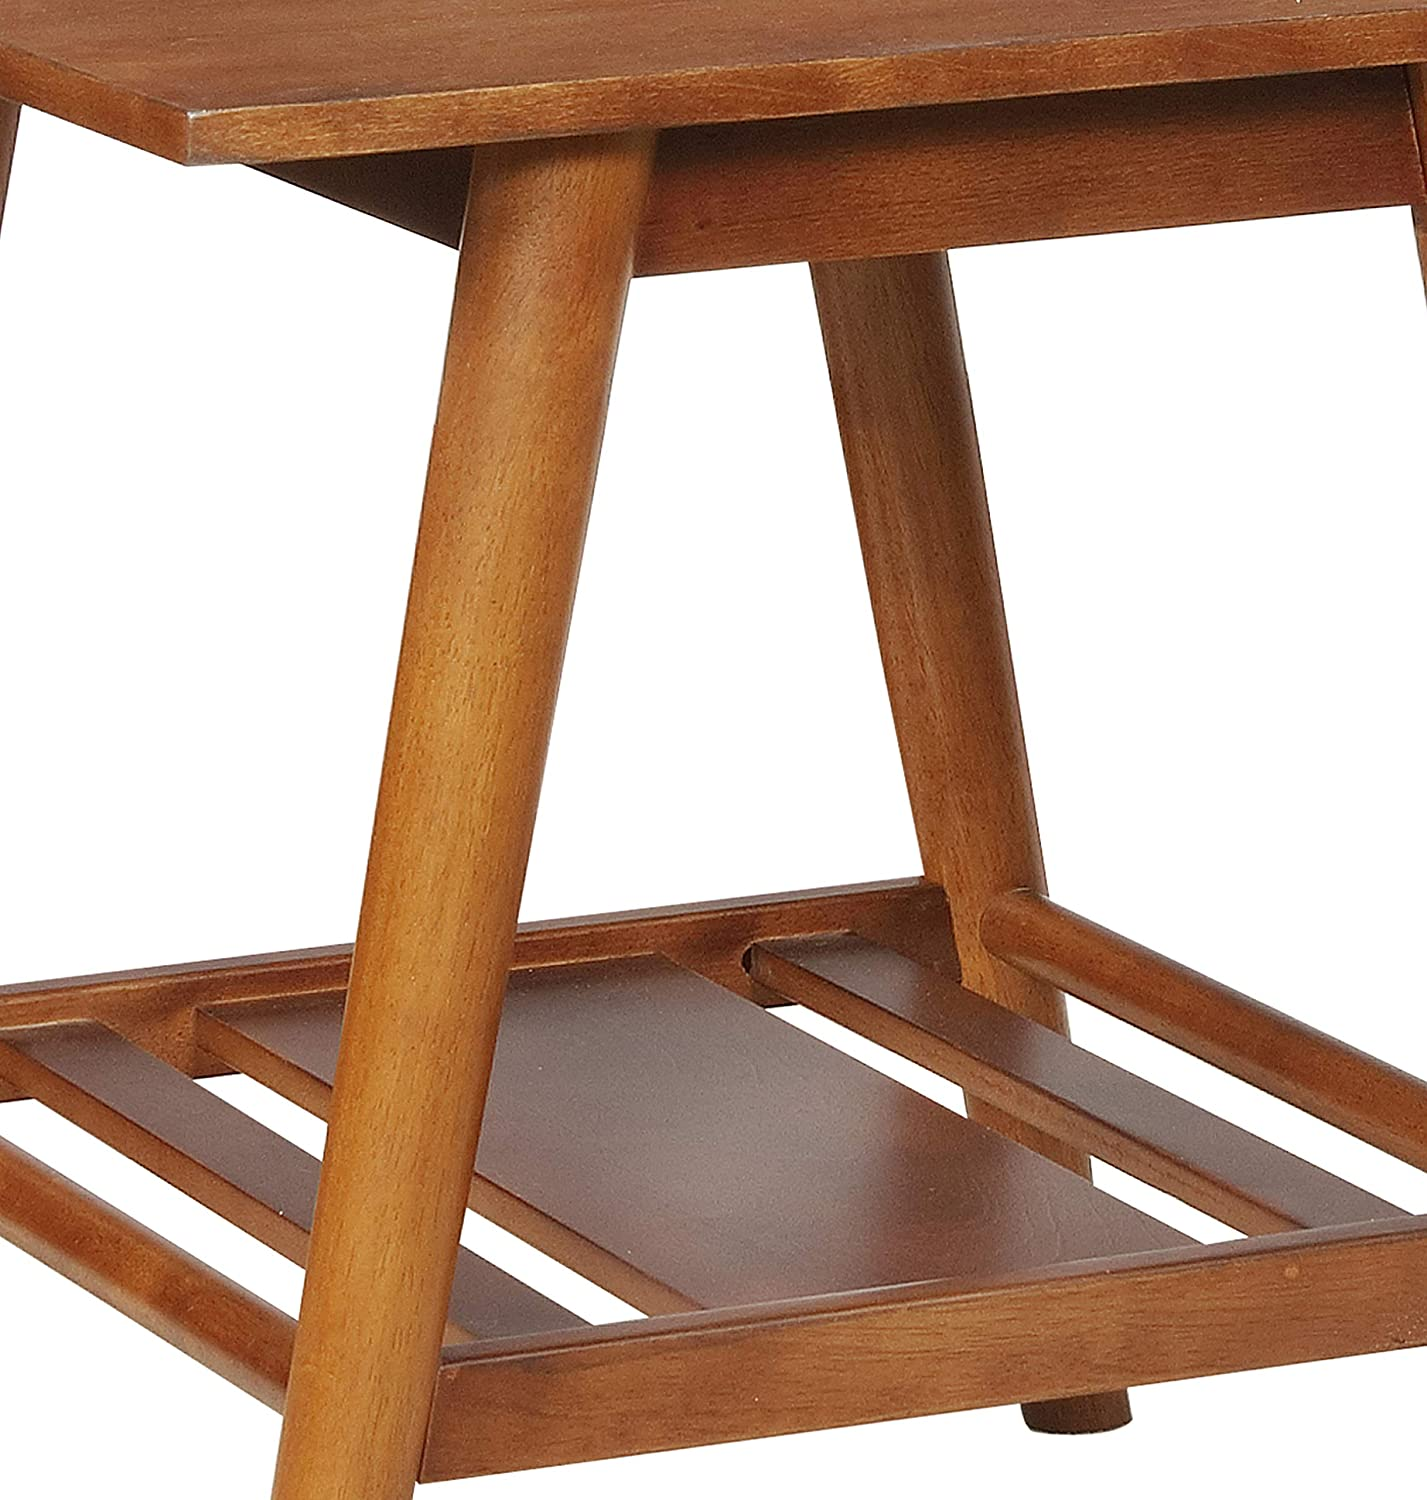 Benjara , Brown Wooden End table with Angled Legs and Open Shelf Storage